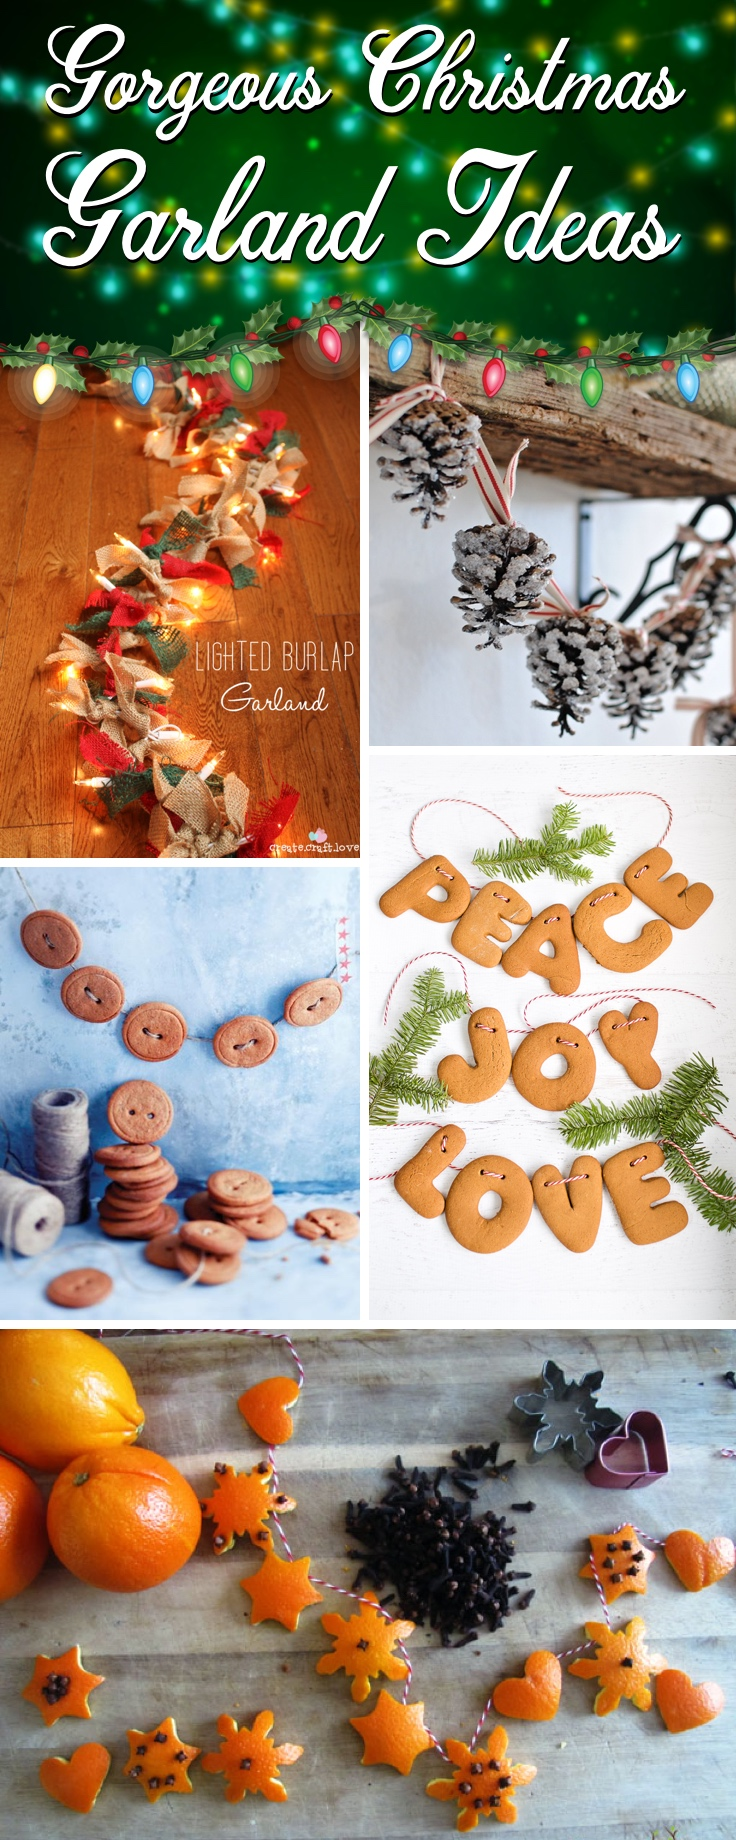 Gorgeous Christmas Garland Ideas To Spruce Up Your Home With X'mas Spirit